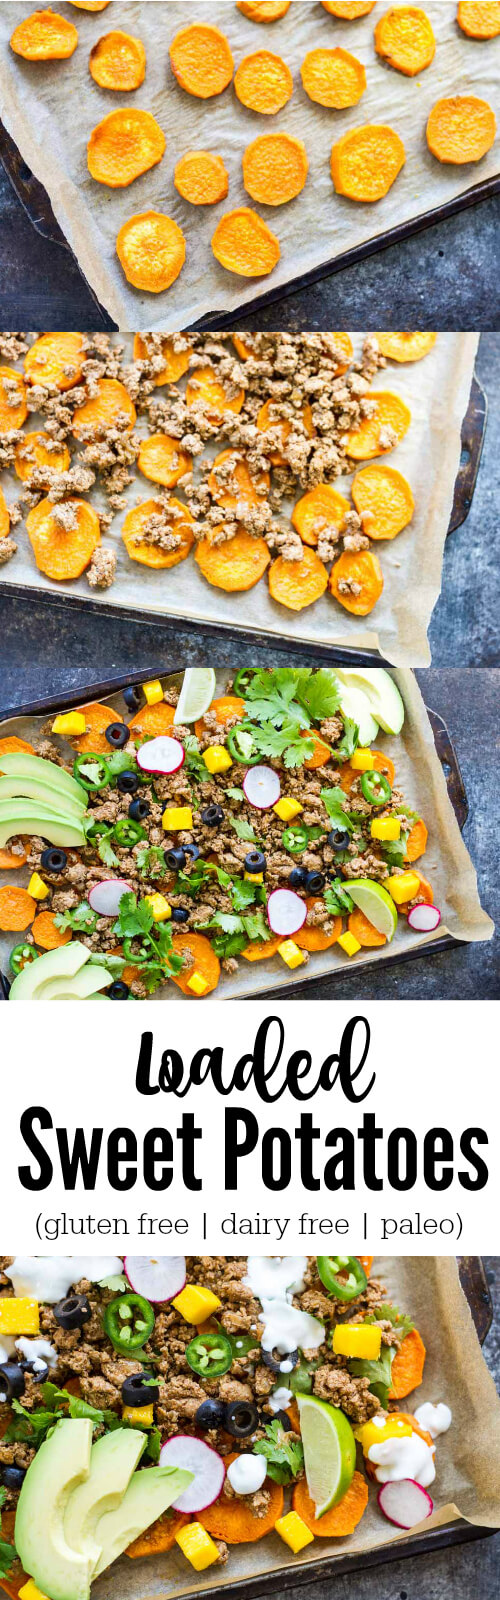 Loaded Sweet Potatoes (gluten free, dairy free, paleo) - www.savorylotus.com